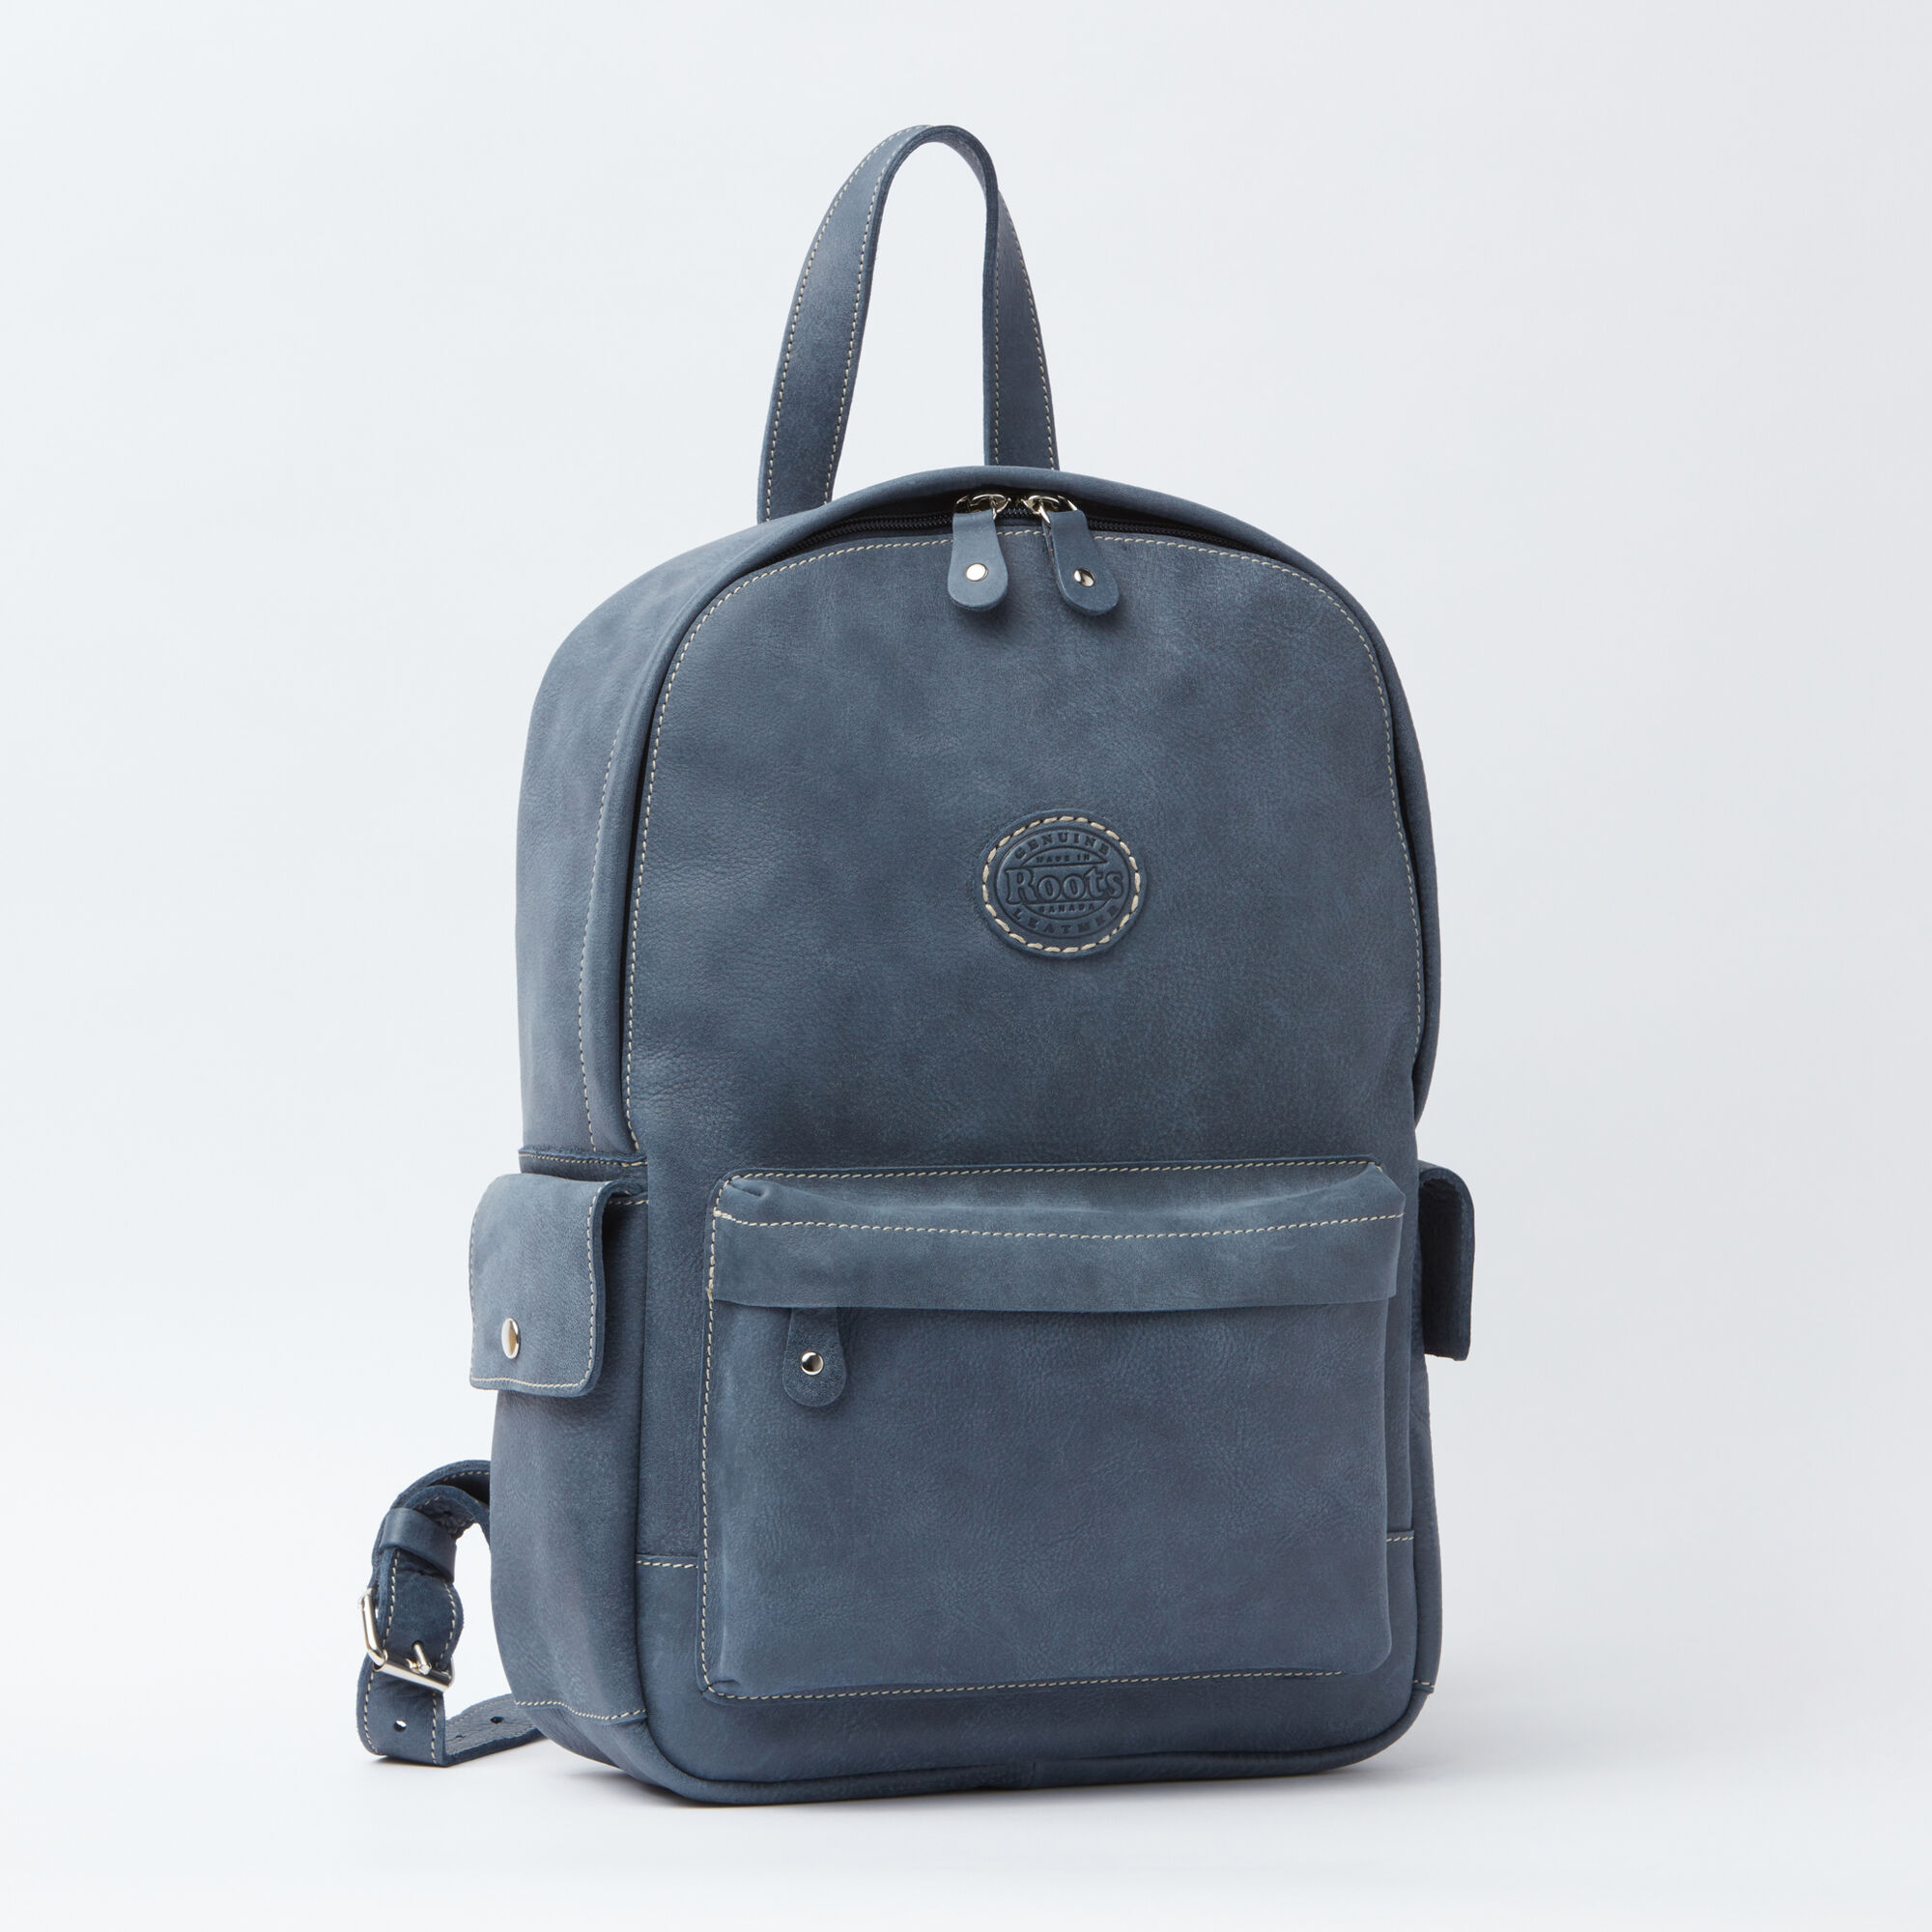 Roots Backpack Leather | Os Backpacks